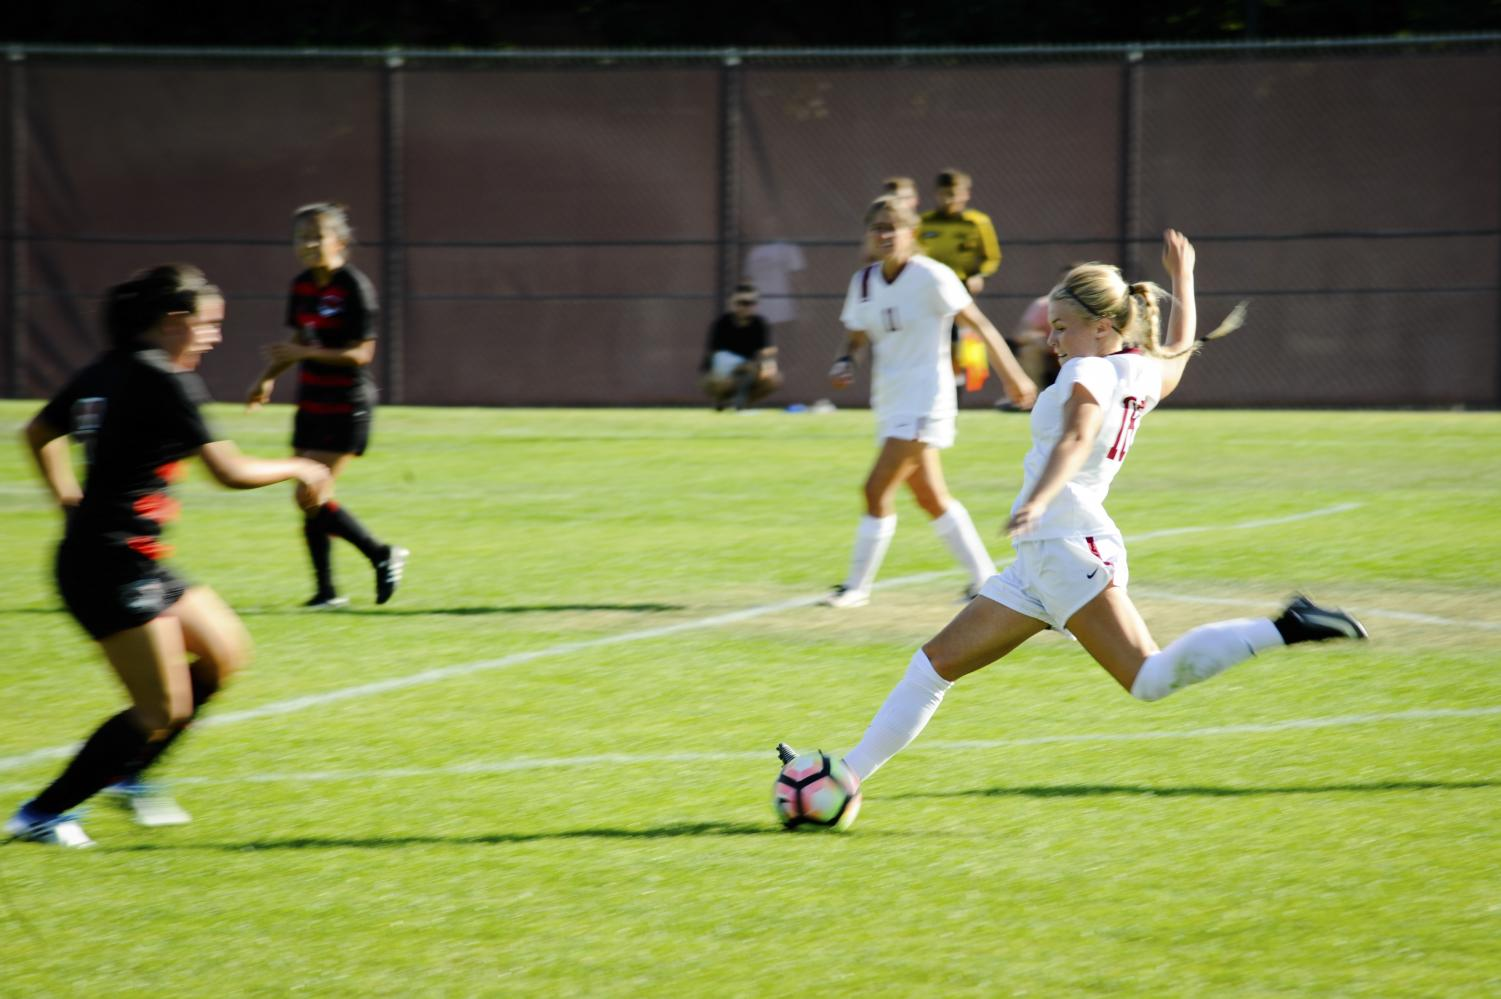 Wildcat Women's Soccer ended their season with a win against Montana State University Billings resulting in a 1-9-2 record.